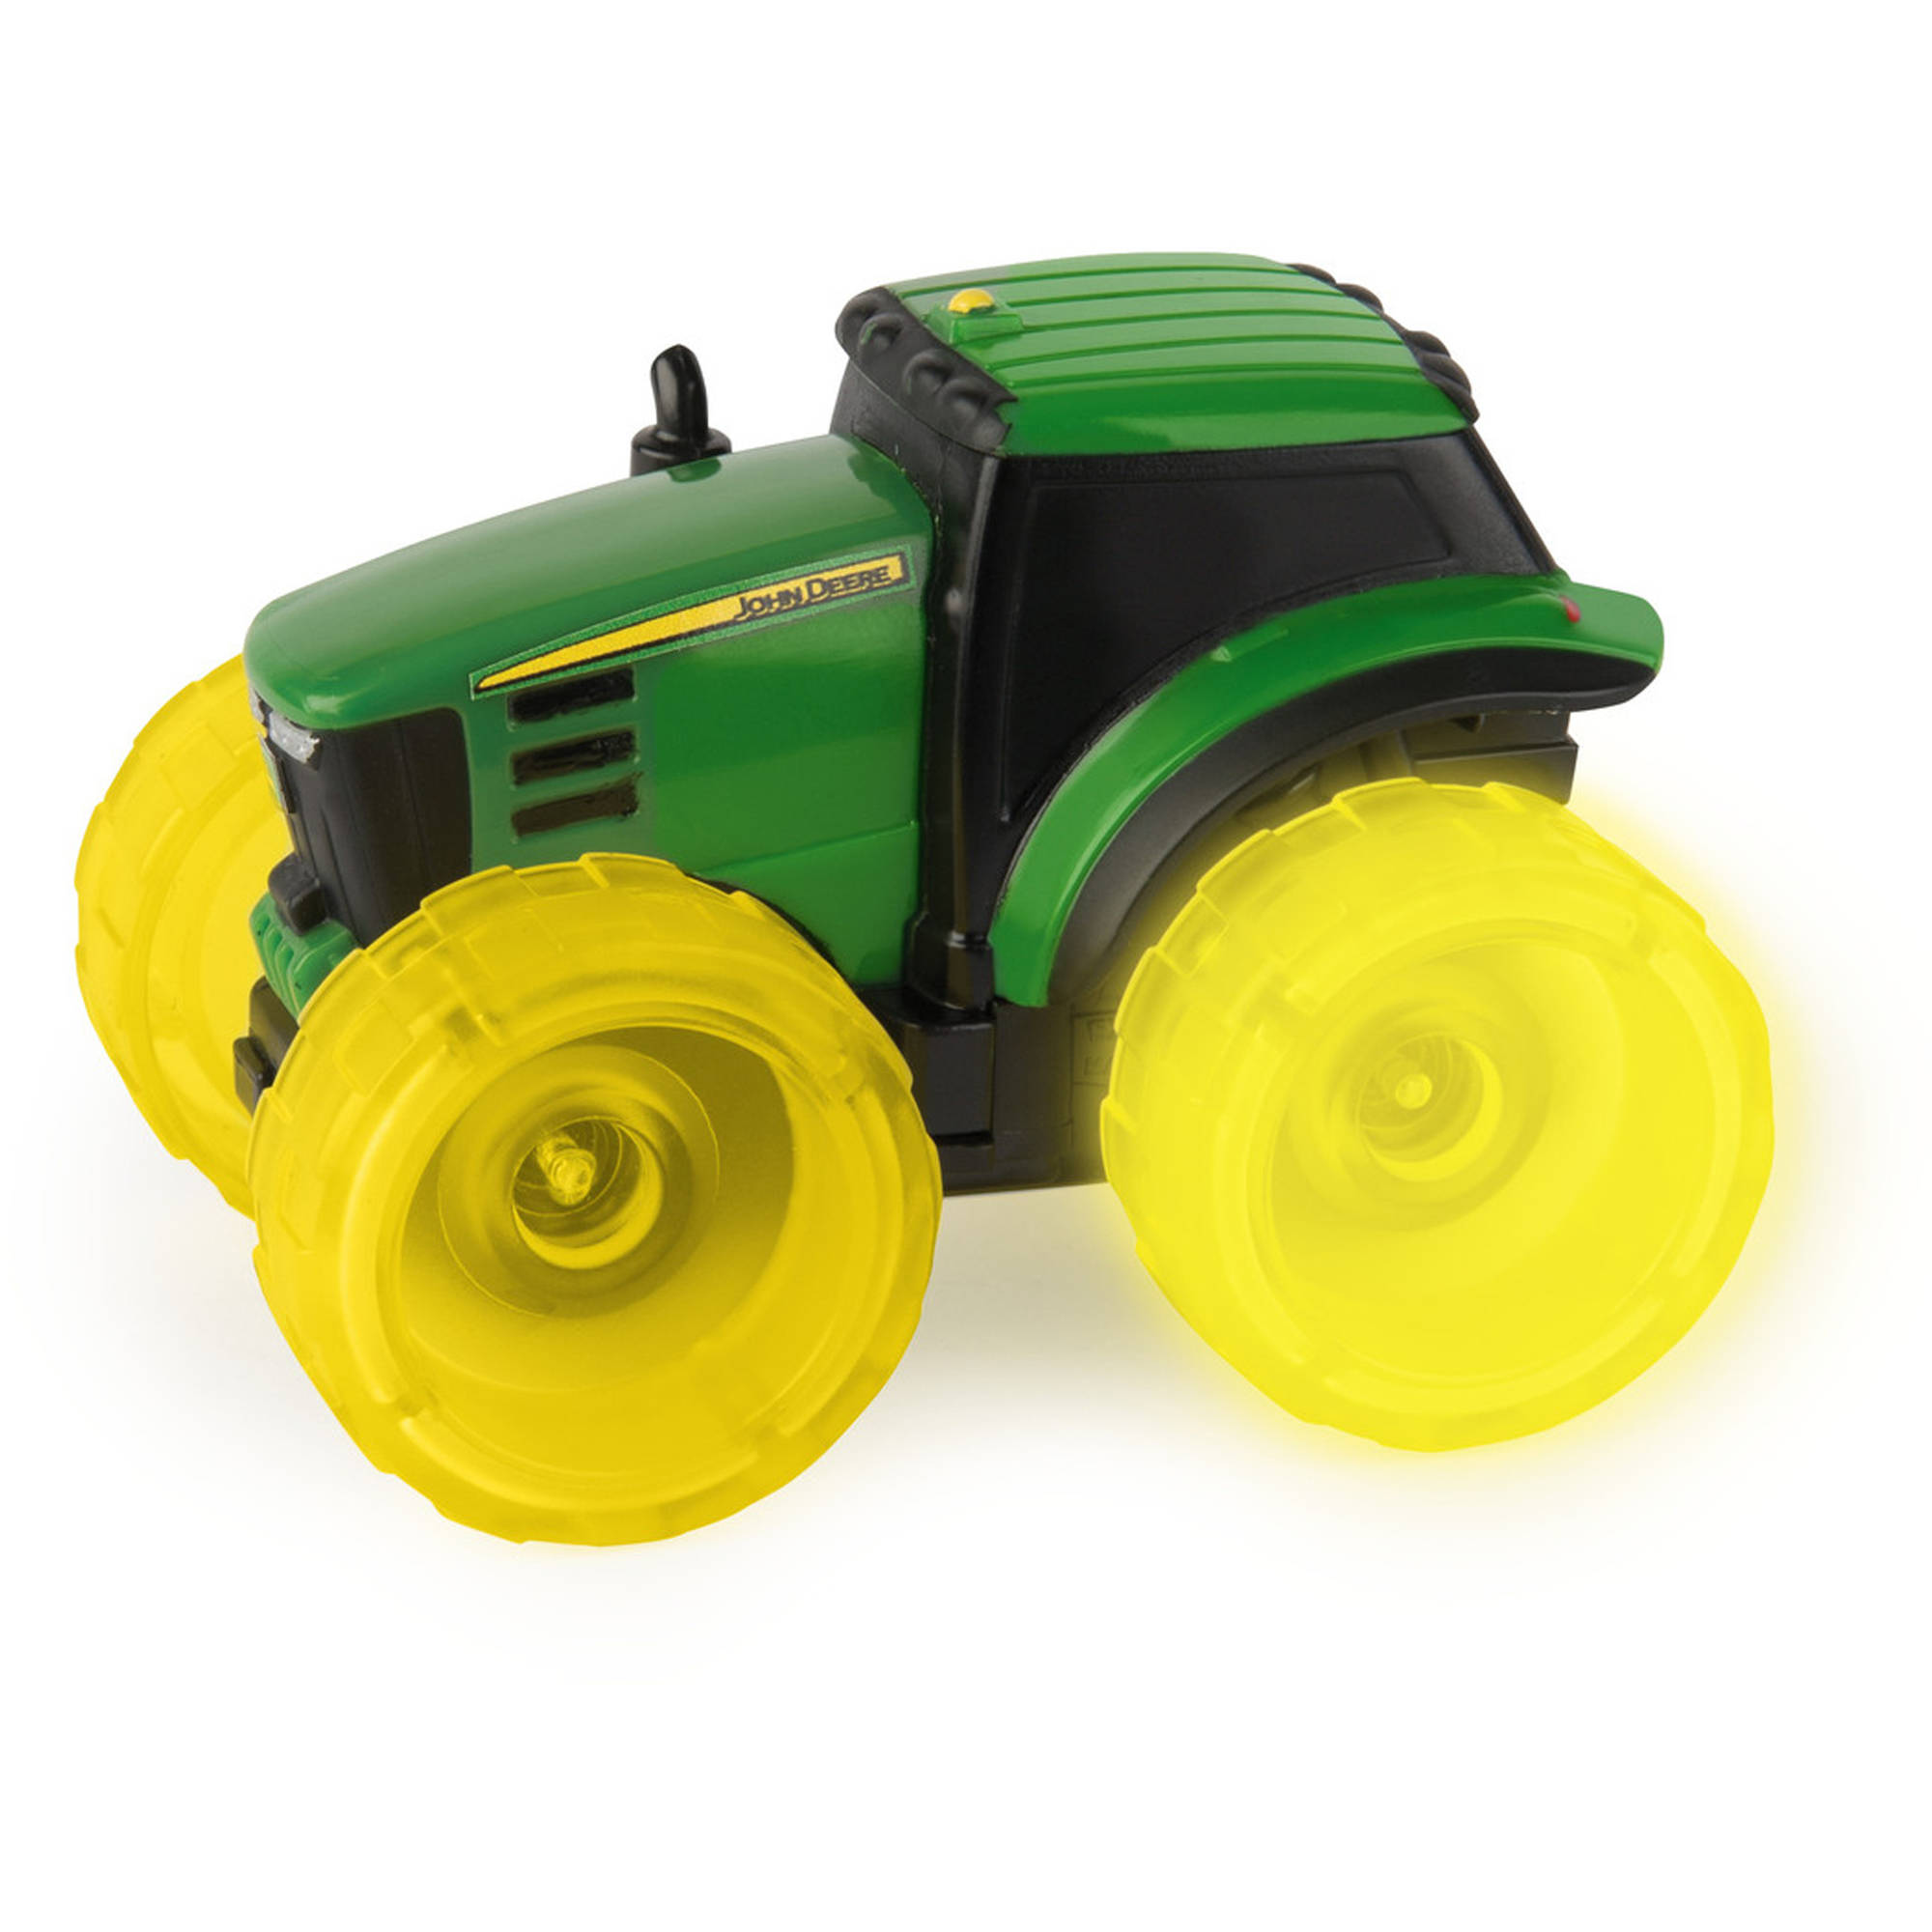 TOMY John Deere Monster Treads Lighting Wheels, Tractor